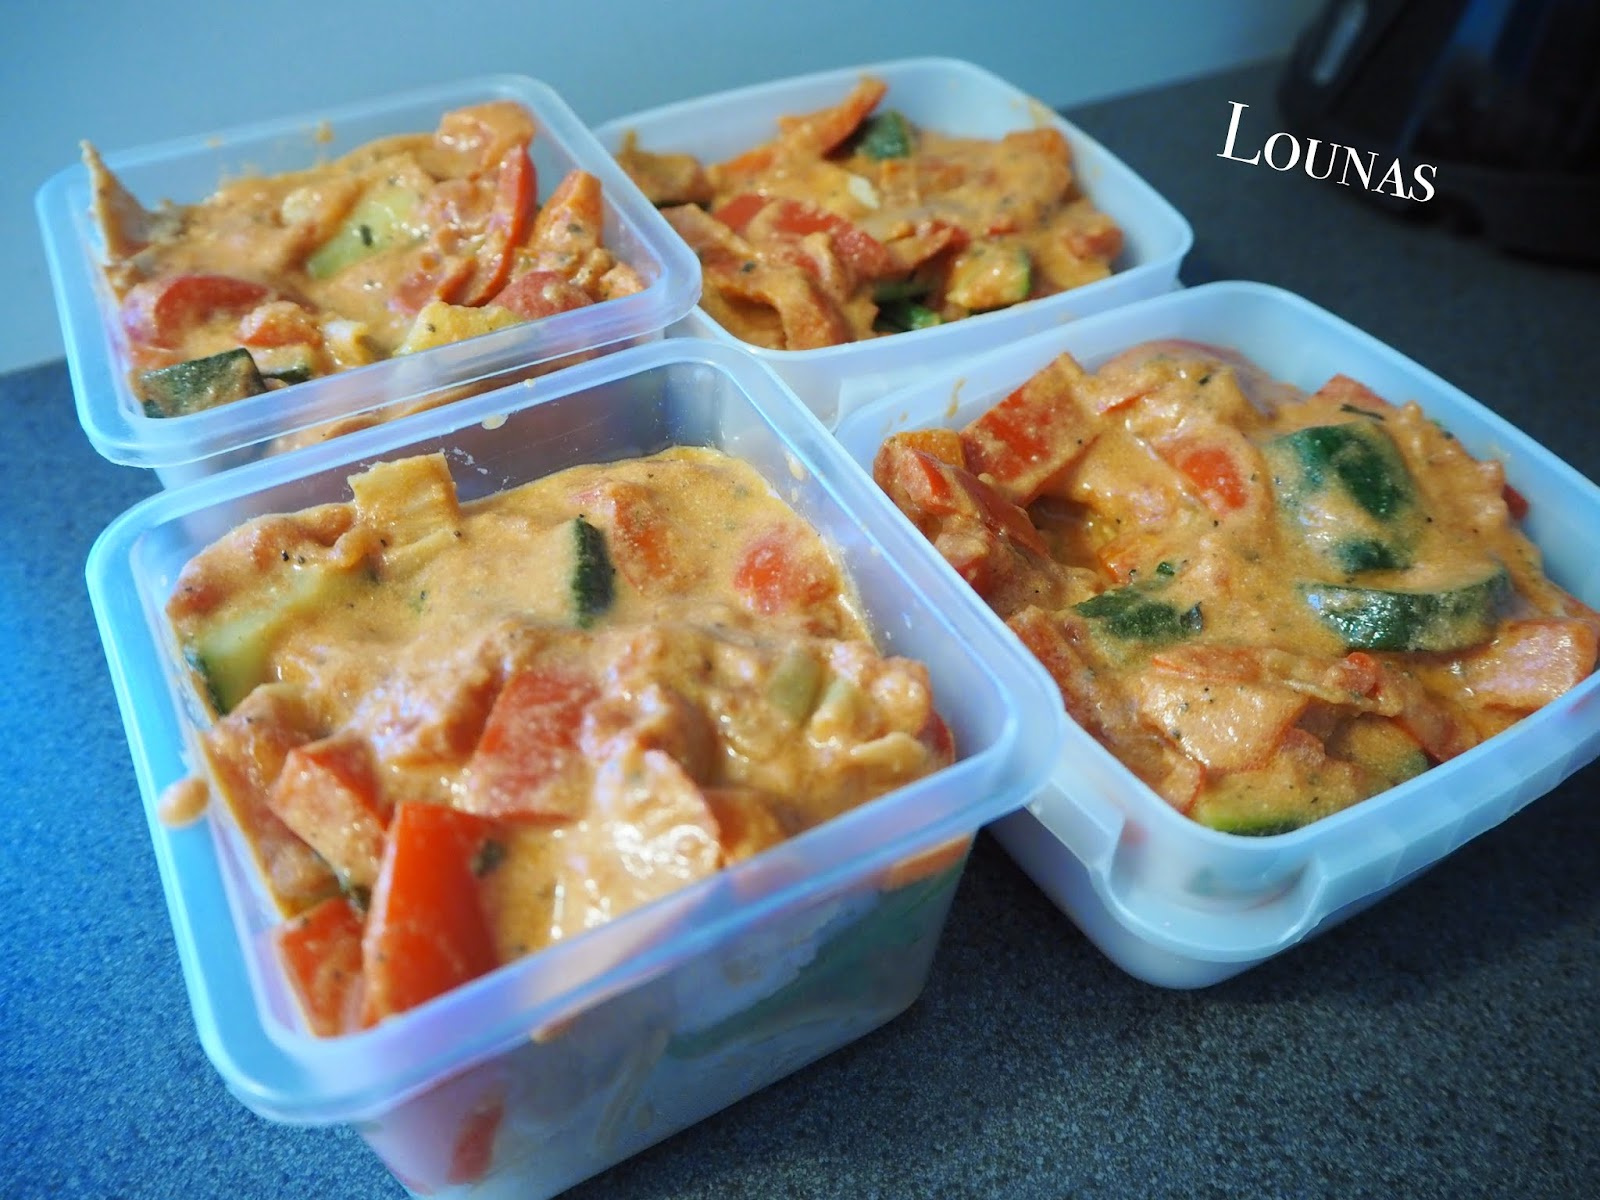 lounas, lunch, kayla itsines, help, food, food program, ruokaohjelma, kanaa, kasviksia, chicken, vegetables,